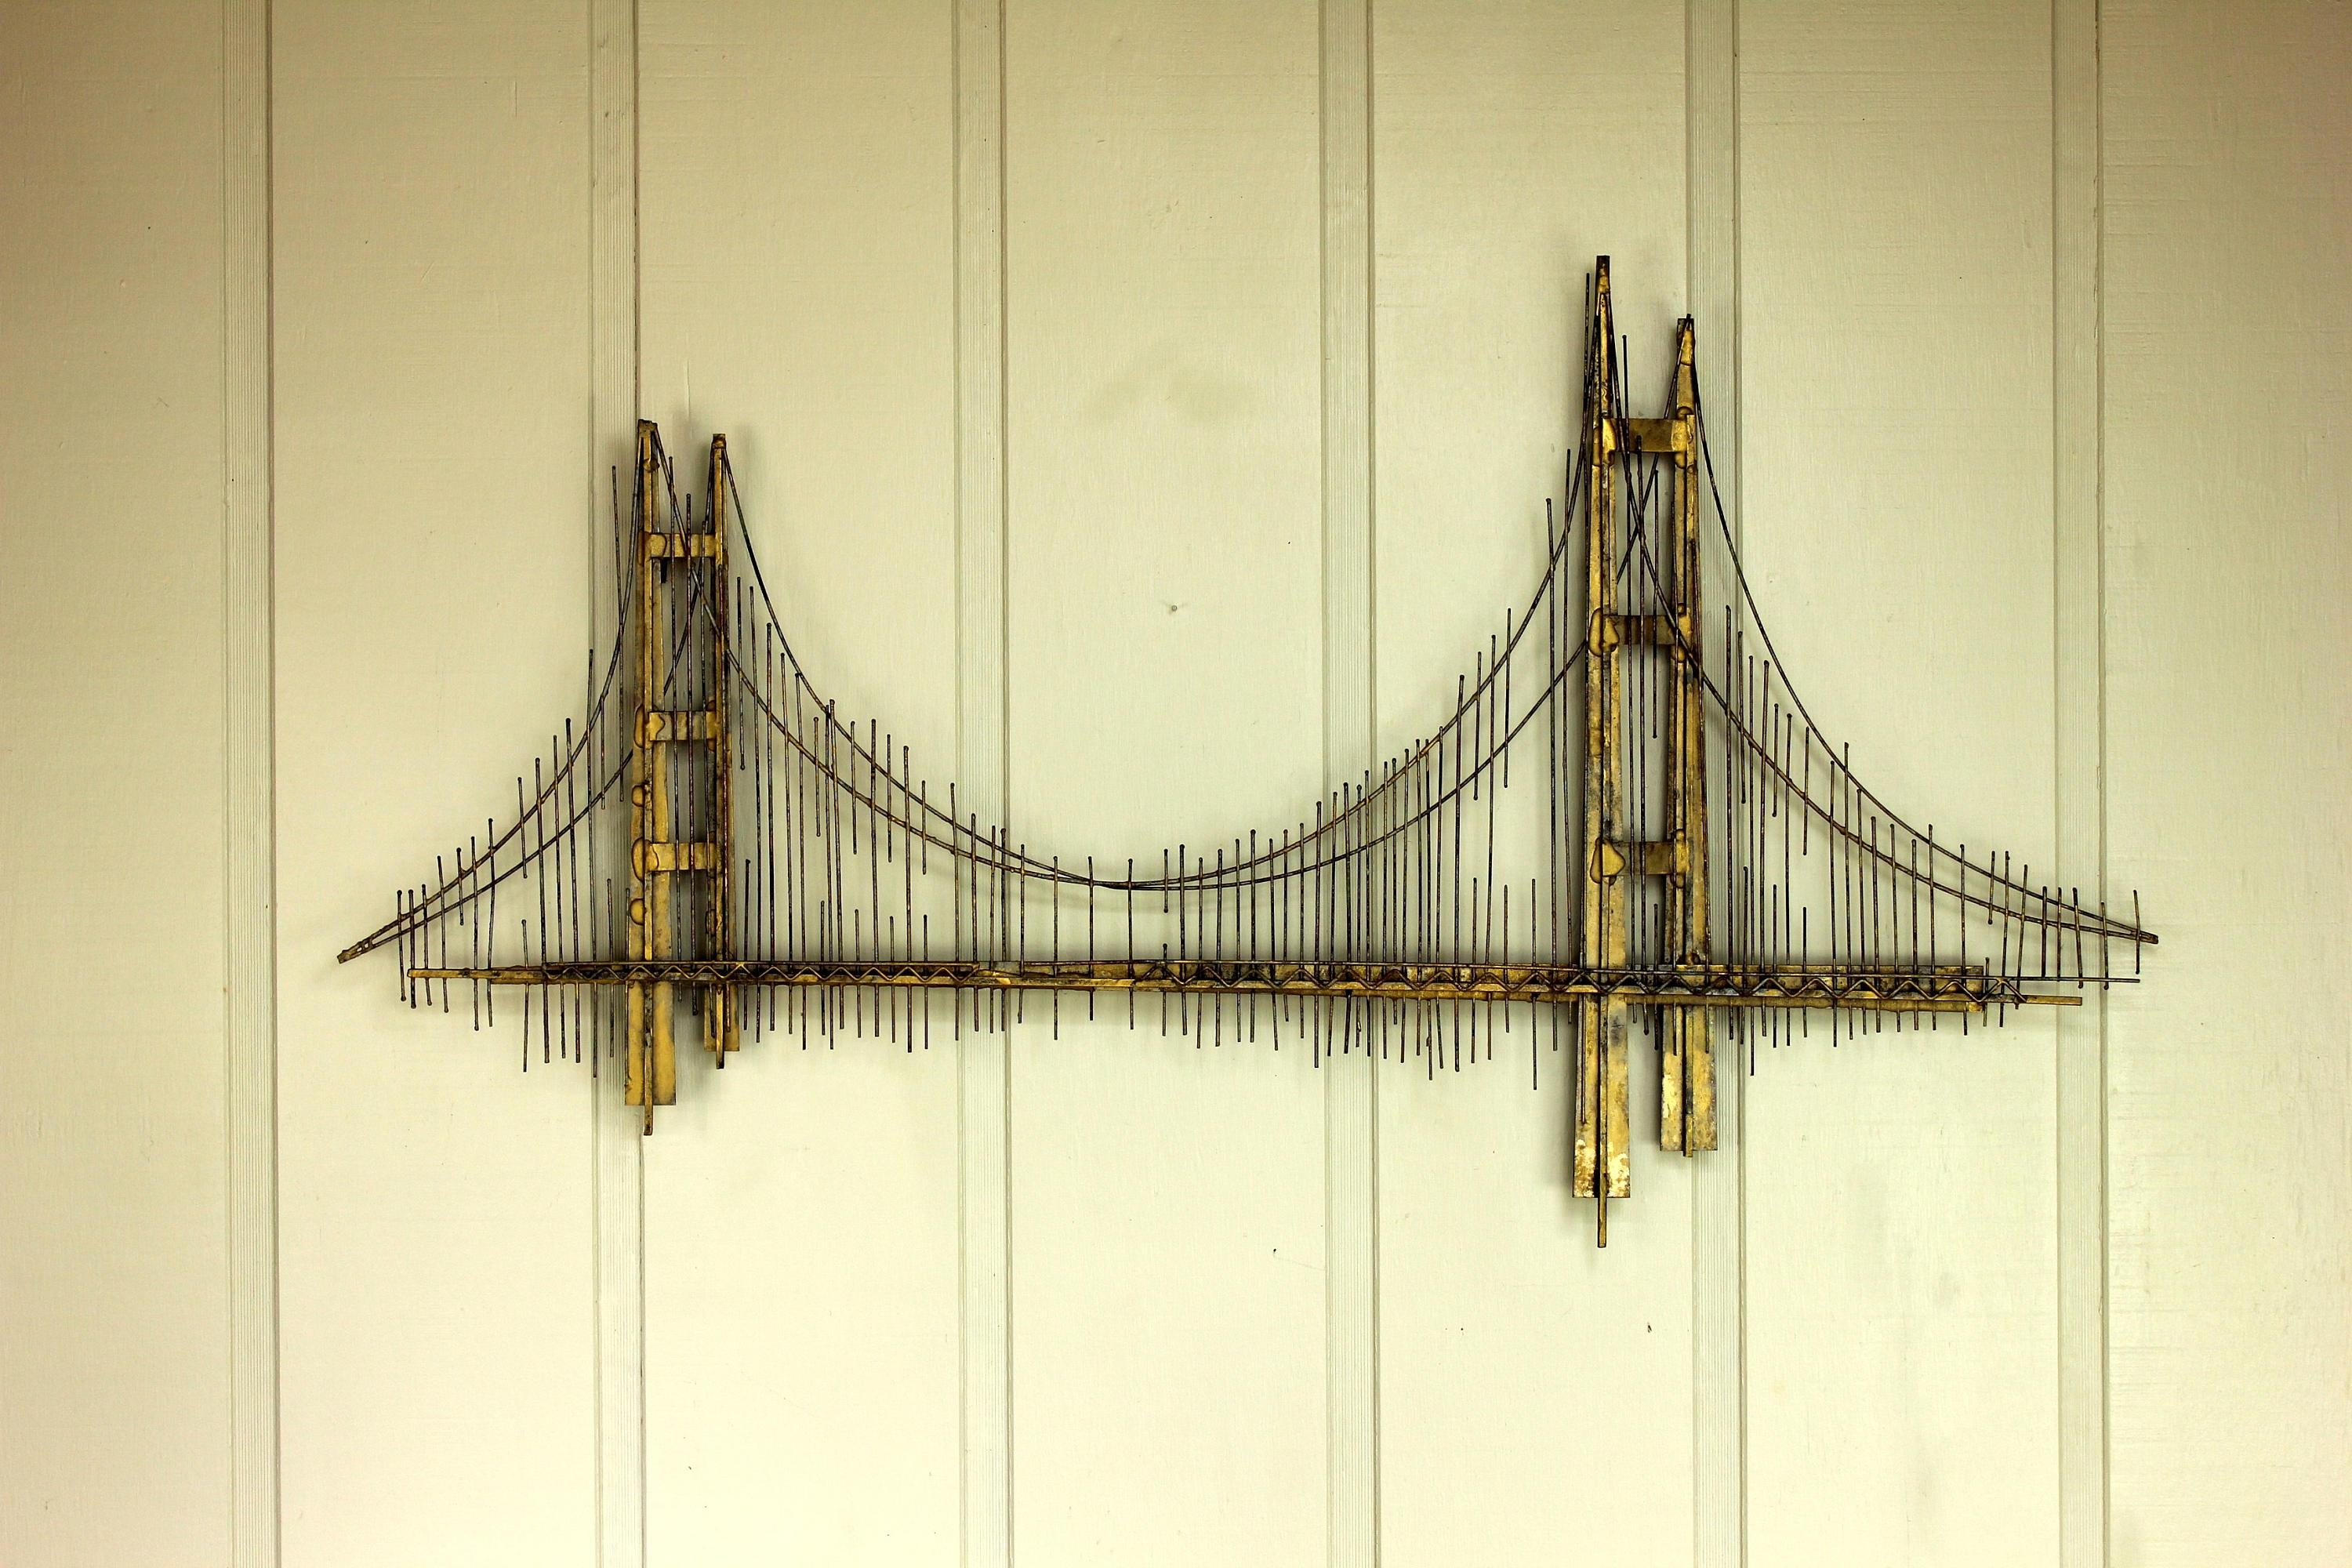 Wall Art Ideas: Metal Gate Wall Art (Explore #11 of 20 Photos)